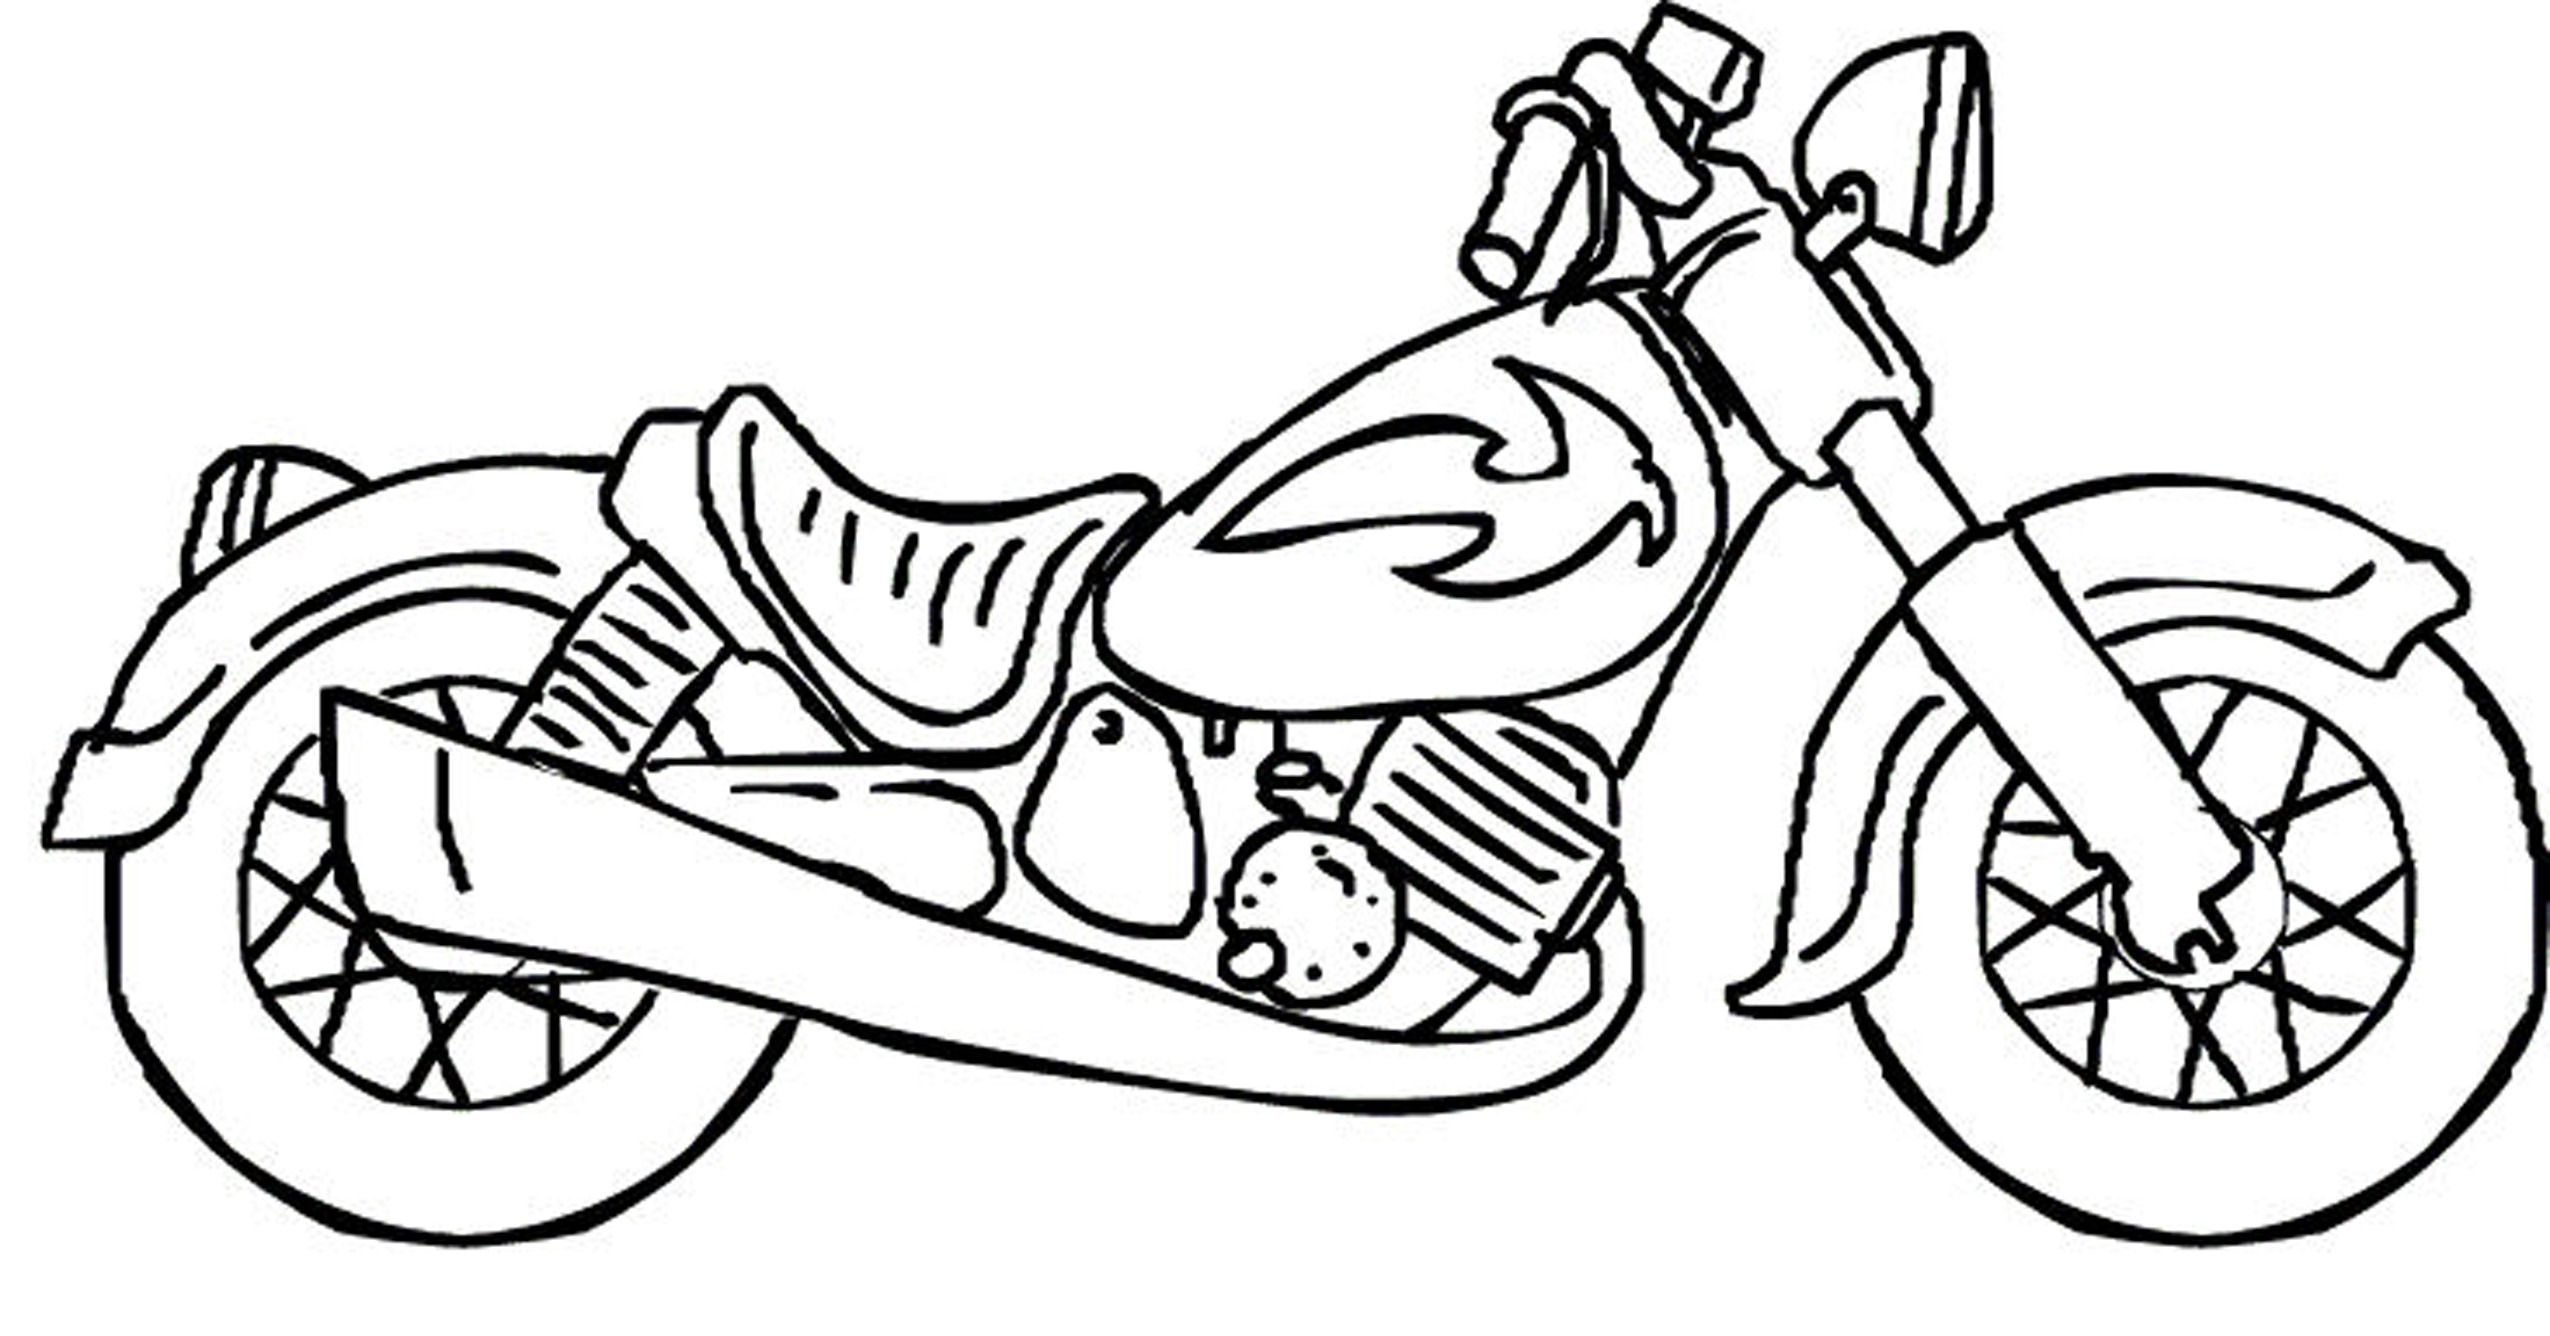 coloringpagesforboyscars Coloring pages for boys